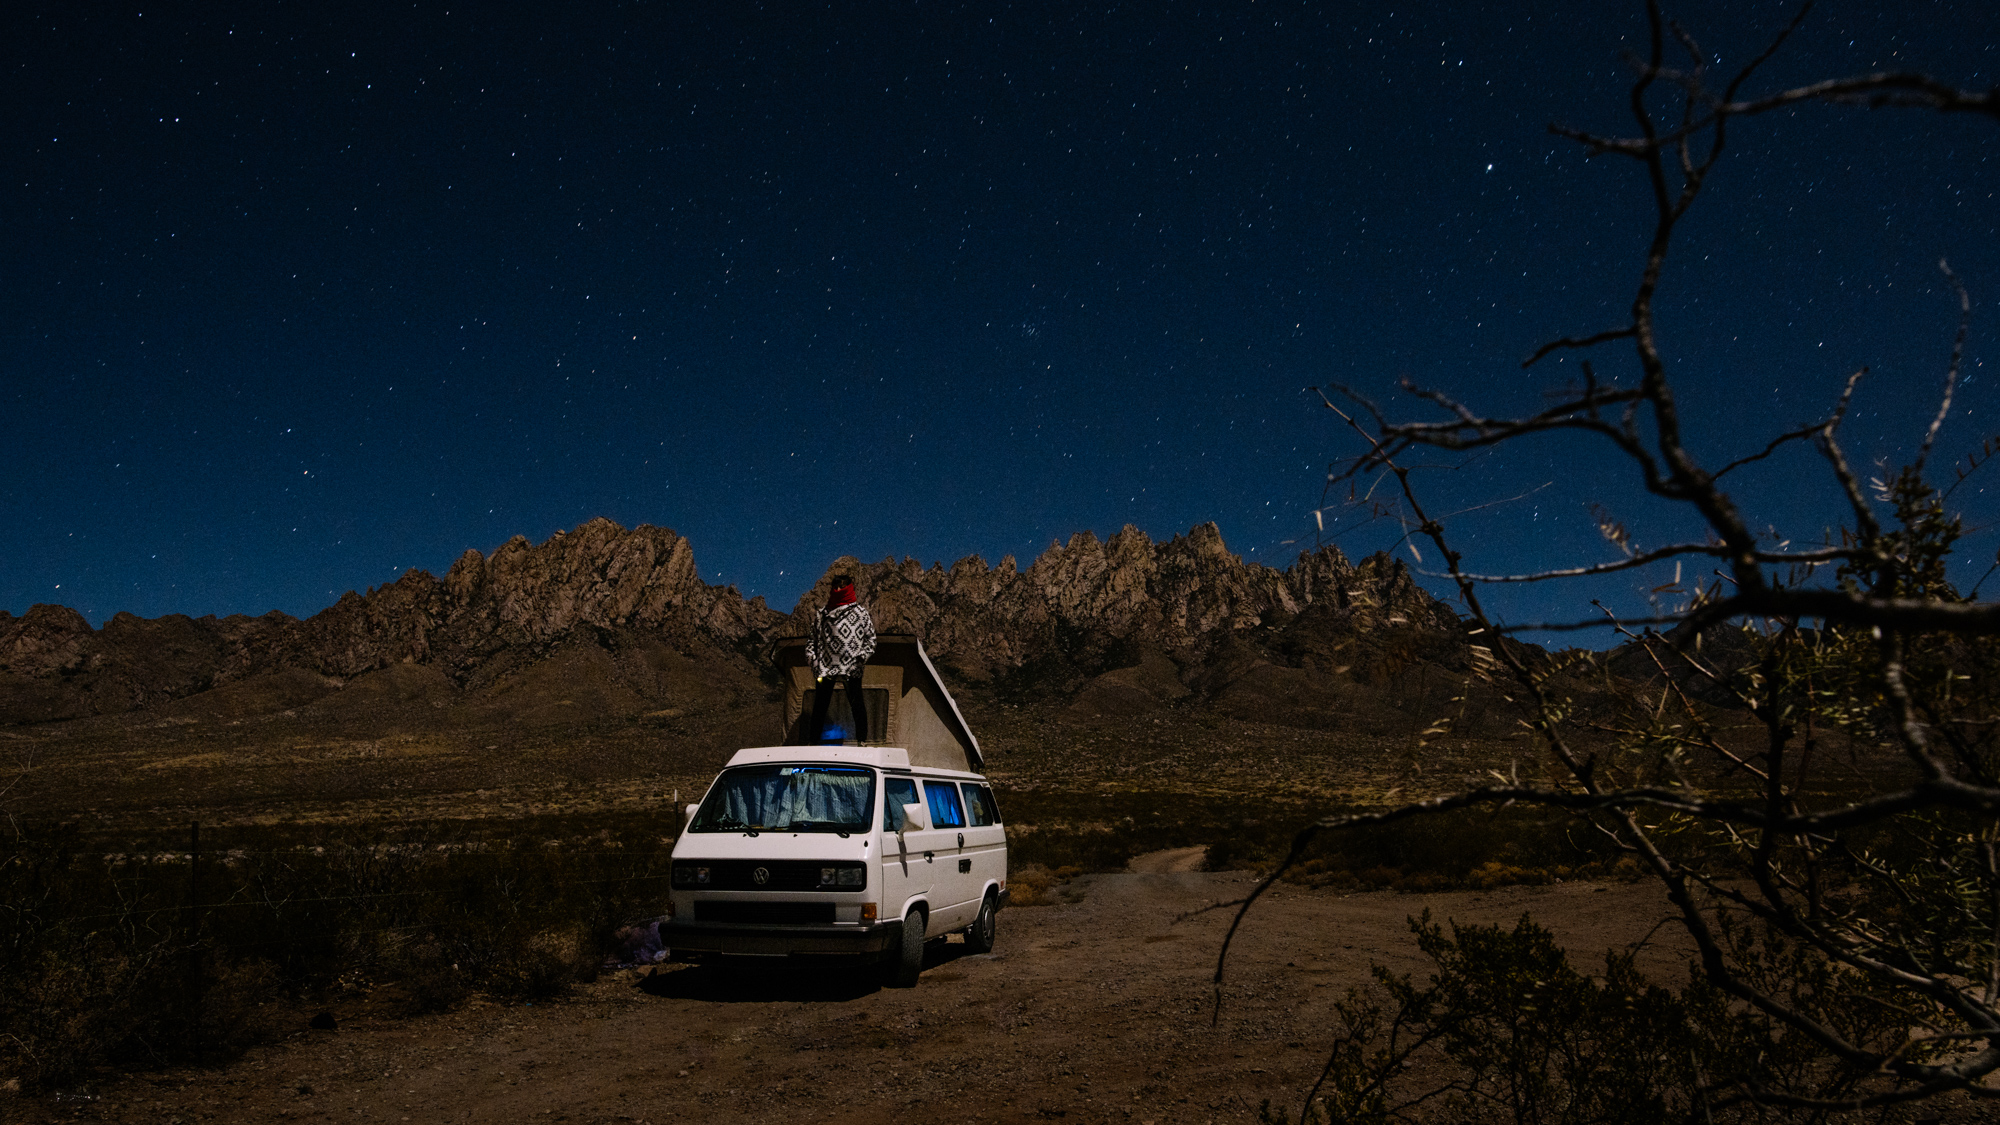 The night before driving into White Sands we parked and slept the night near Organ Mountain National Recreation Area.